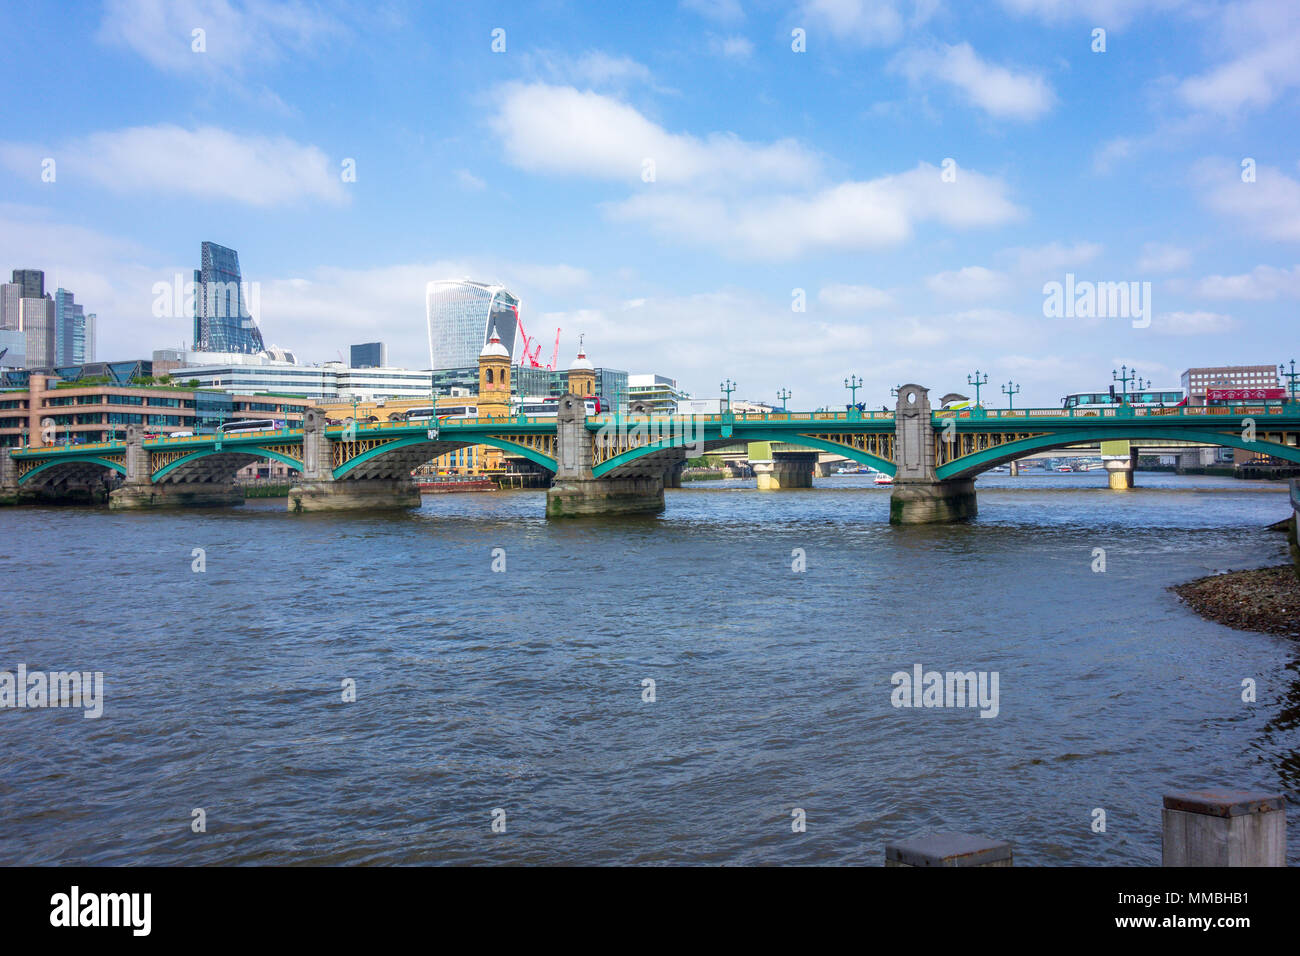 Southwark Bridge, the River Thames and London's city skyline featuring 20 Fenchurch St, 122 Leadenhall St and Tower 42. - Stock Image